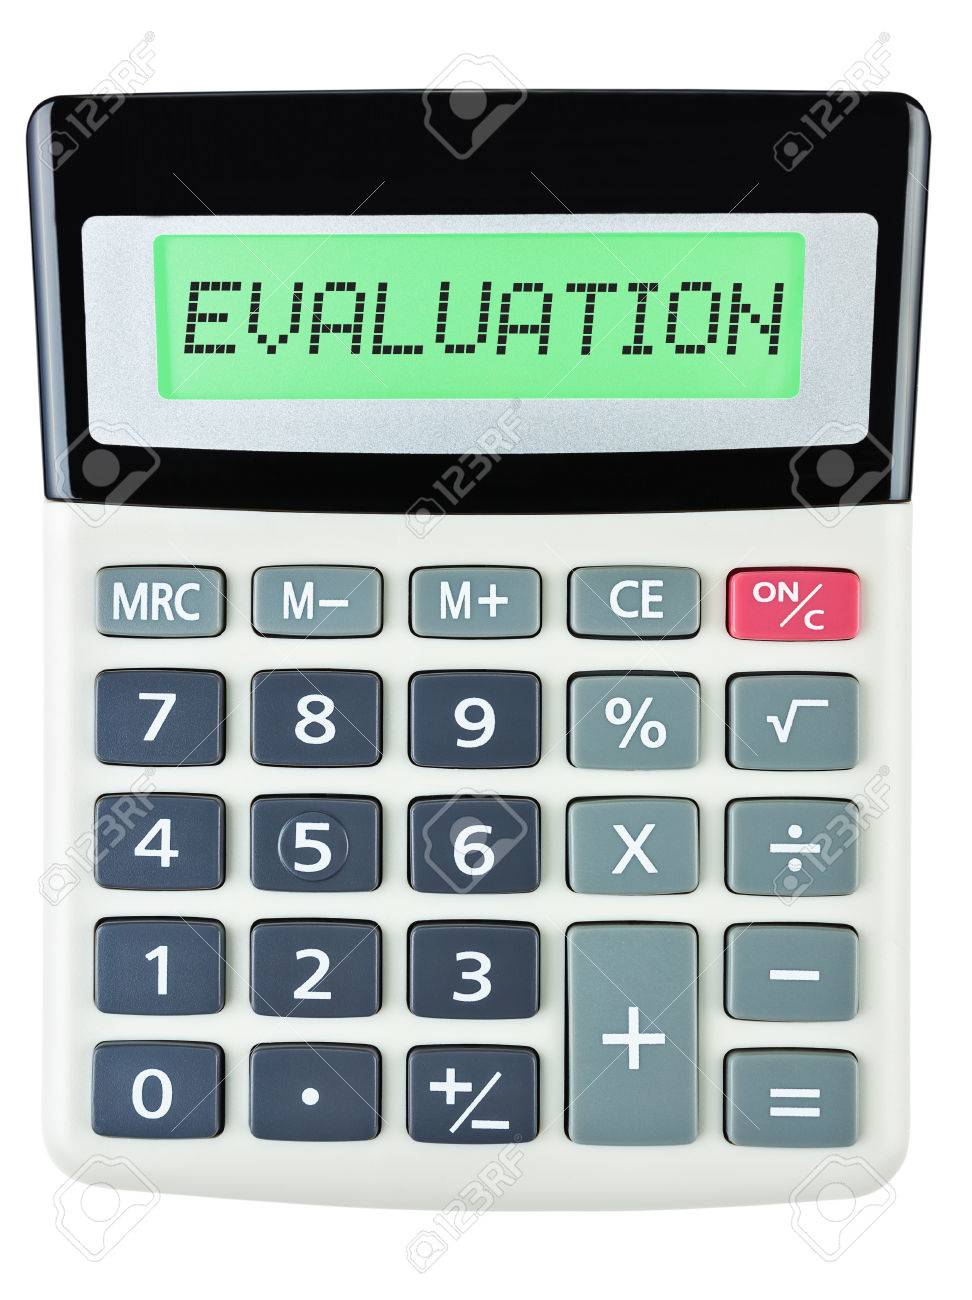 Calculator With Evaluation On Display Isolated On White Background